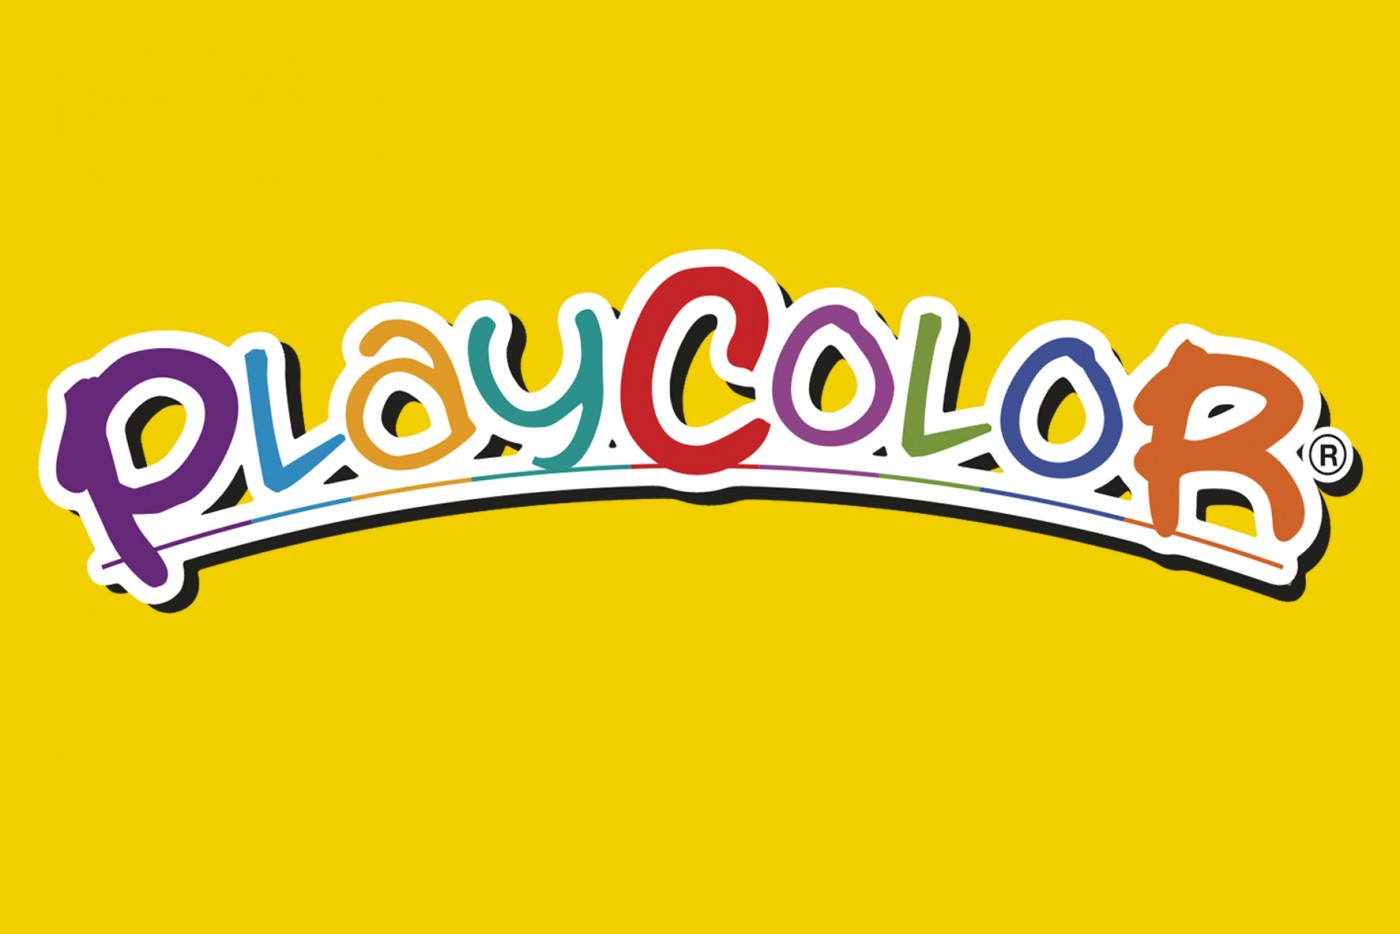 Playcolor es